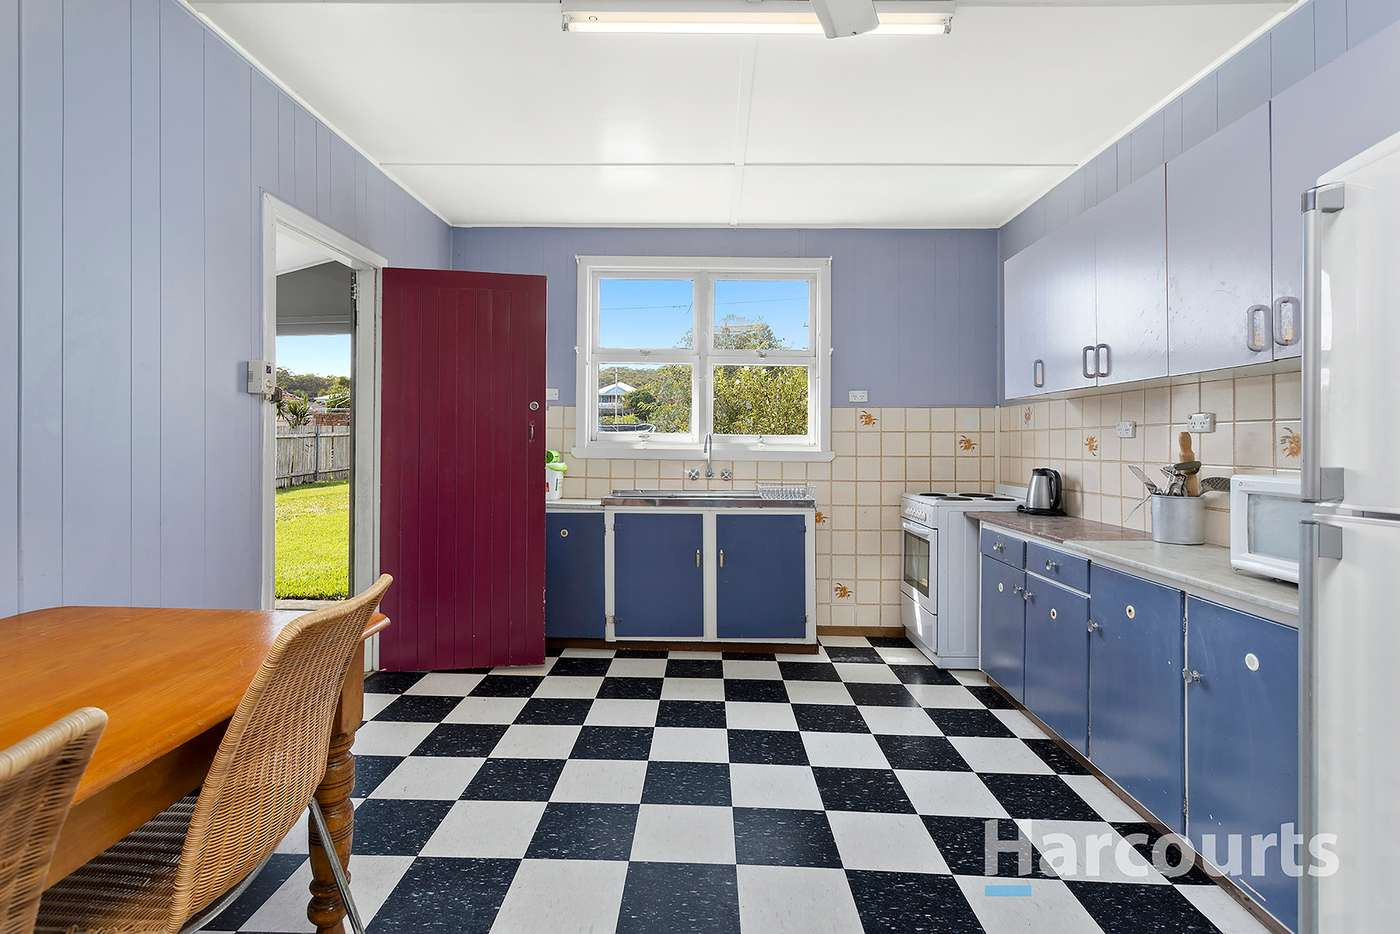 Fifth view of Homely house listing, 54 Marine Parade, Nords Wharf NSW 2281